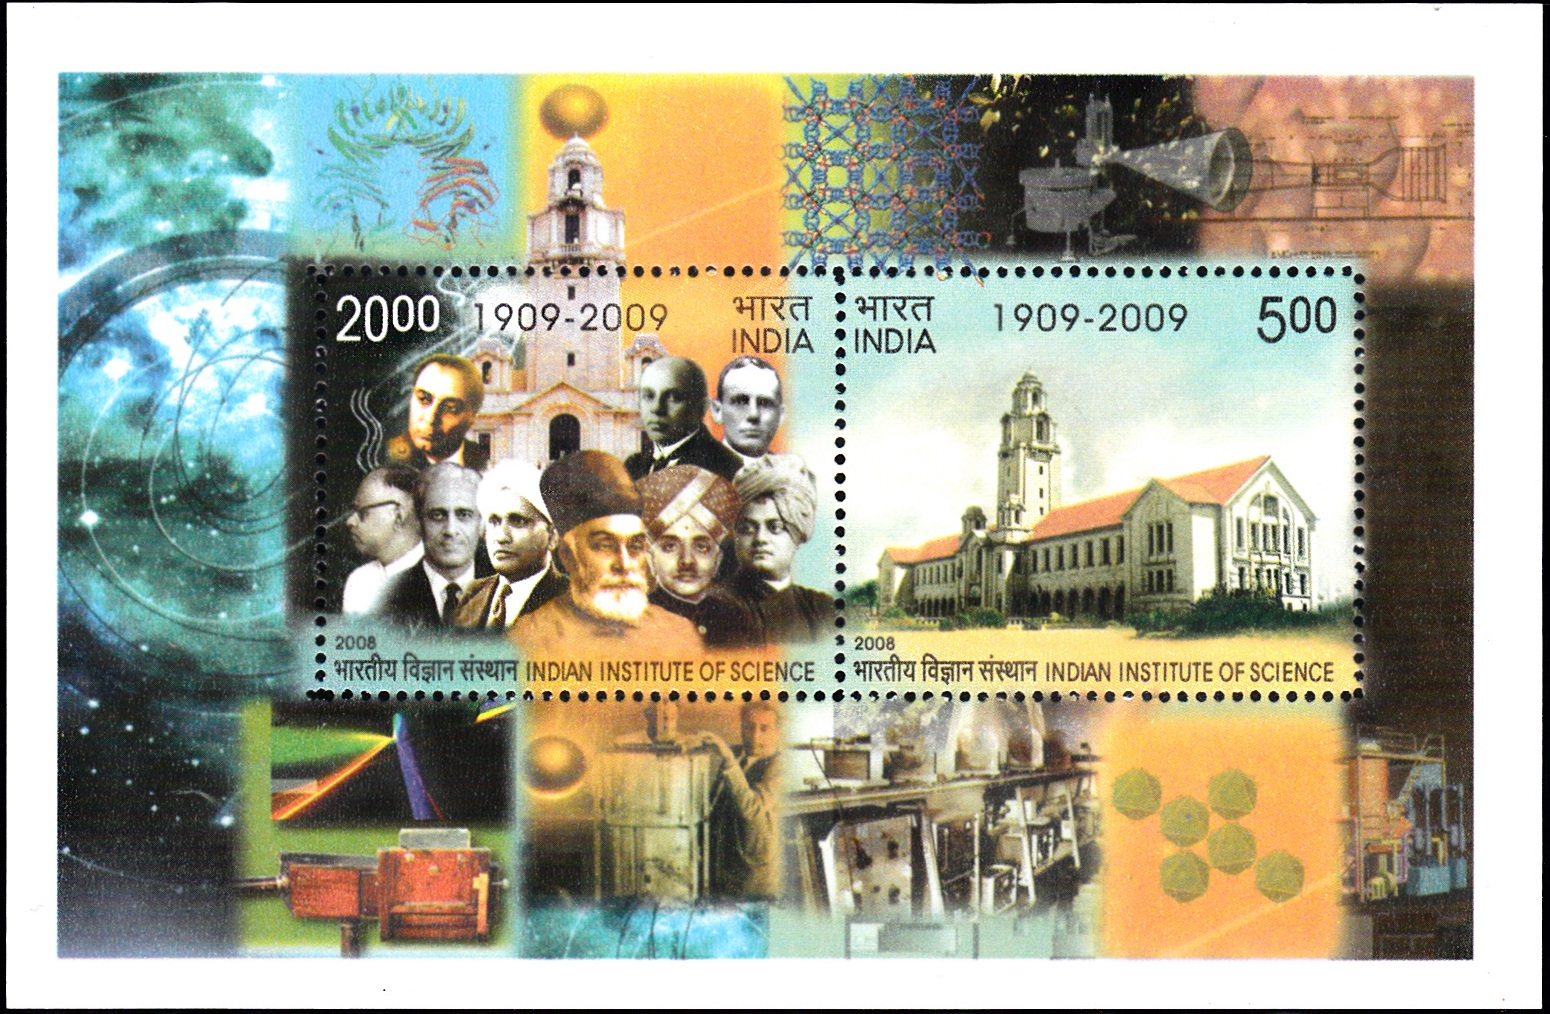 2426 Indian Institute of Science [Miniature Sheet]